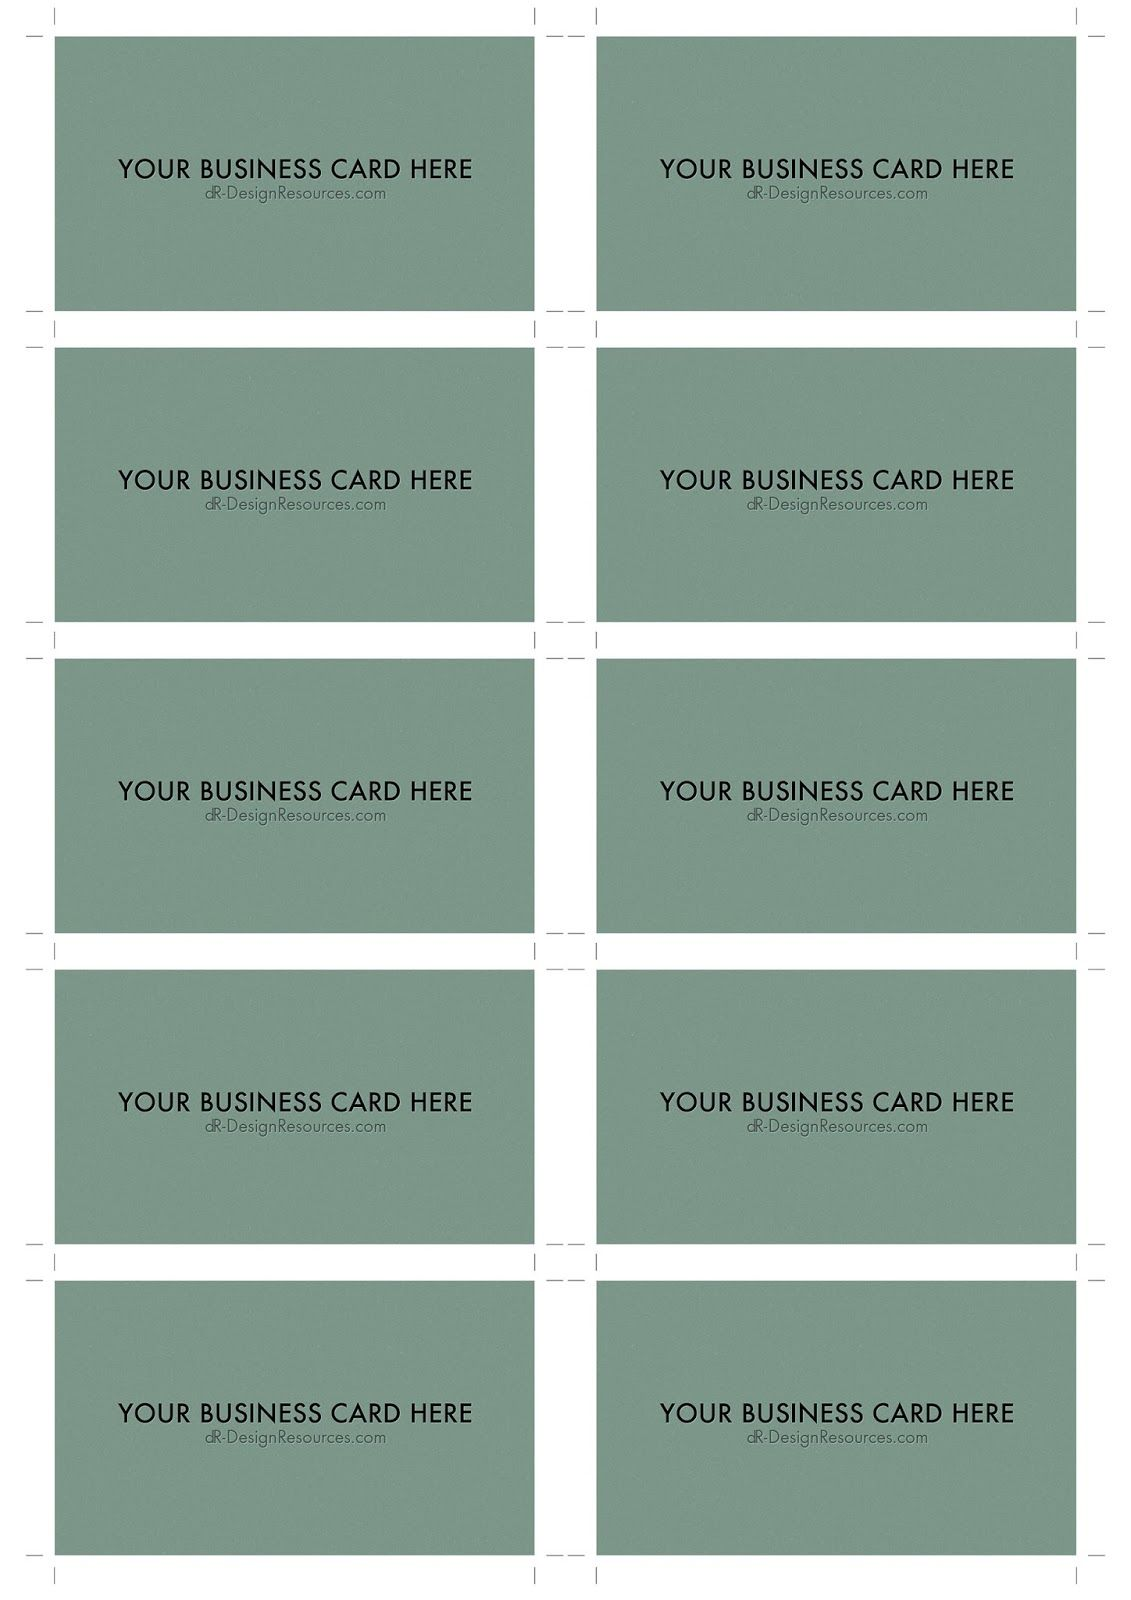 A4 business card template psd 10 per sheet business cards a4 business card template psd 10 per sheet flashek Choice Image